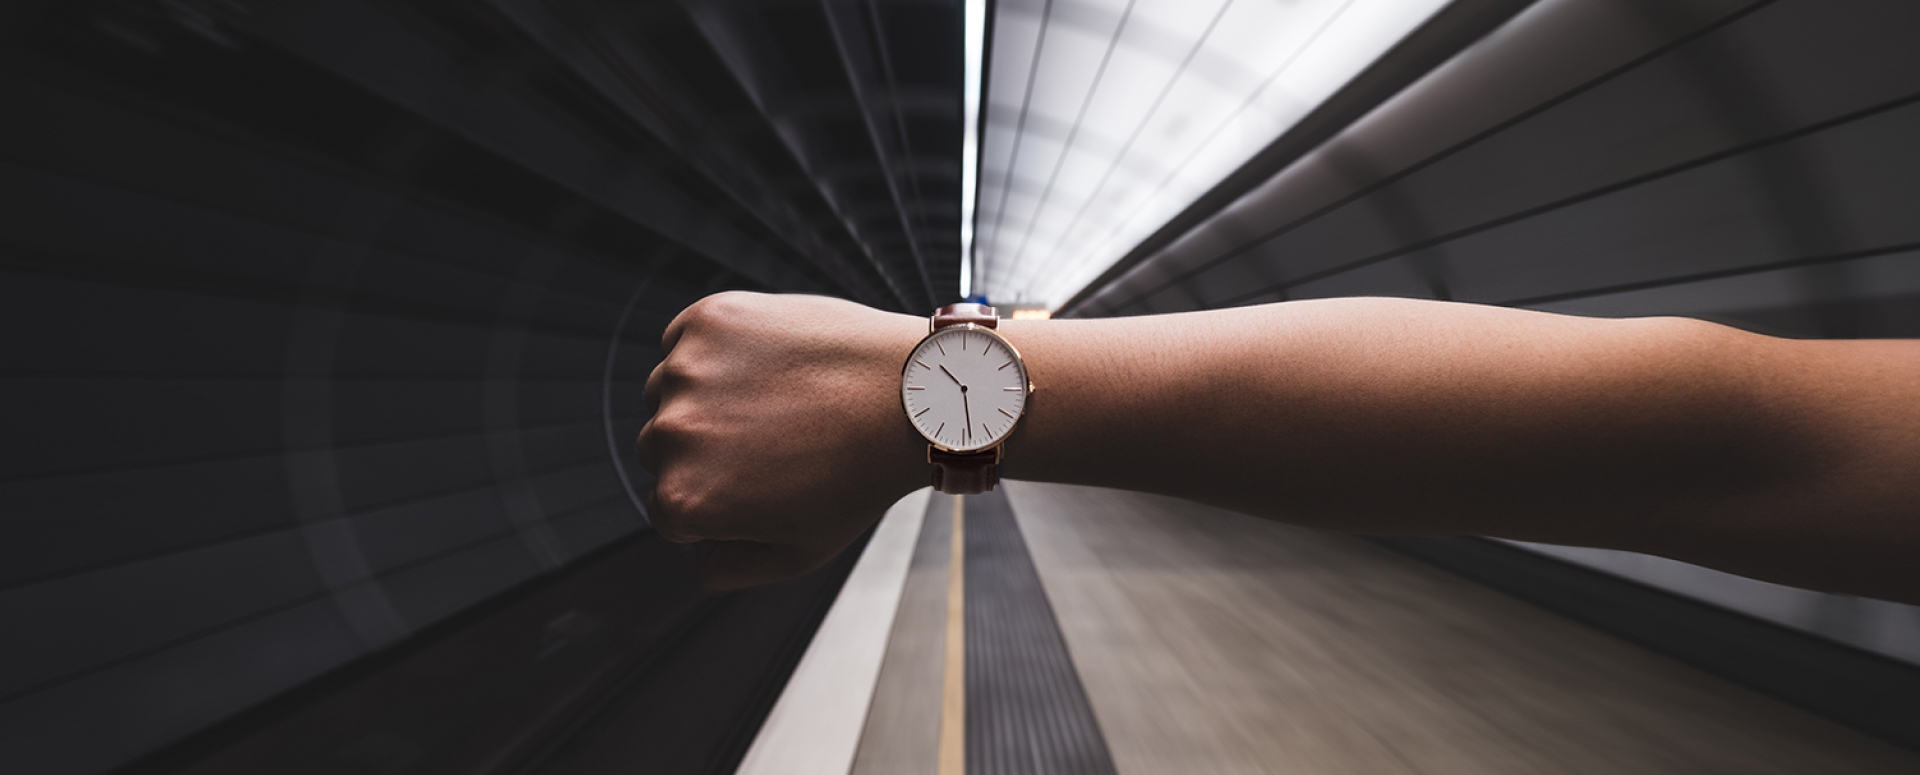 ey_recommends_hand_metro_watch